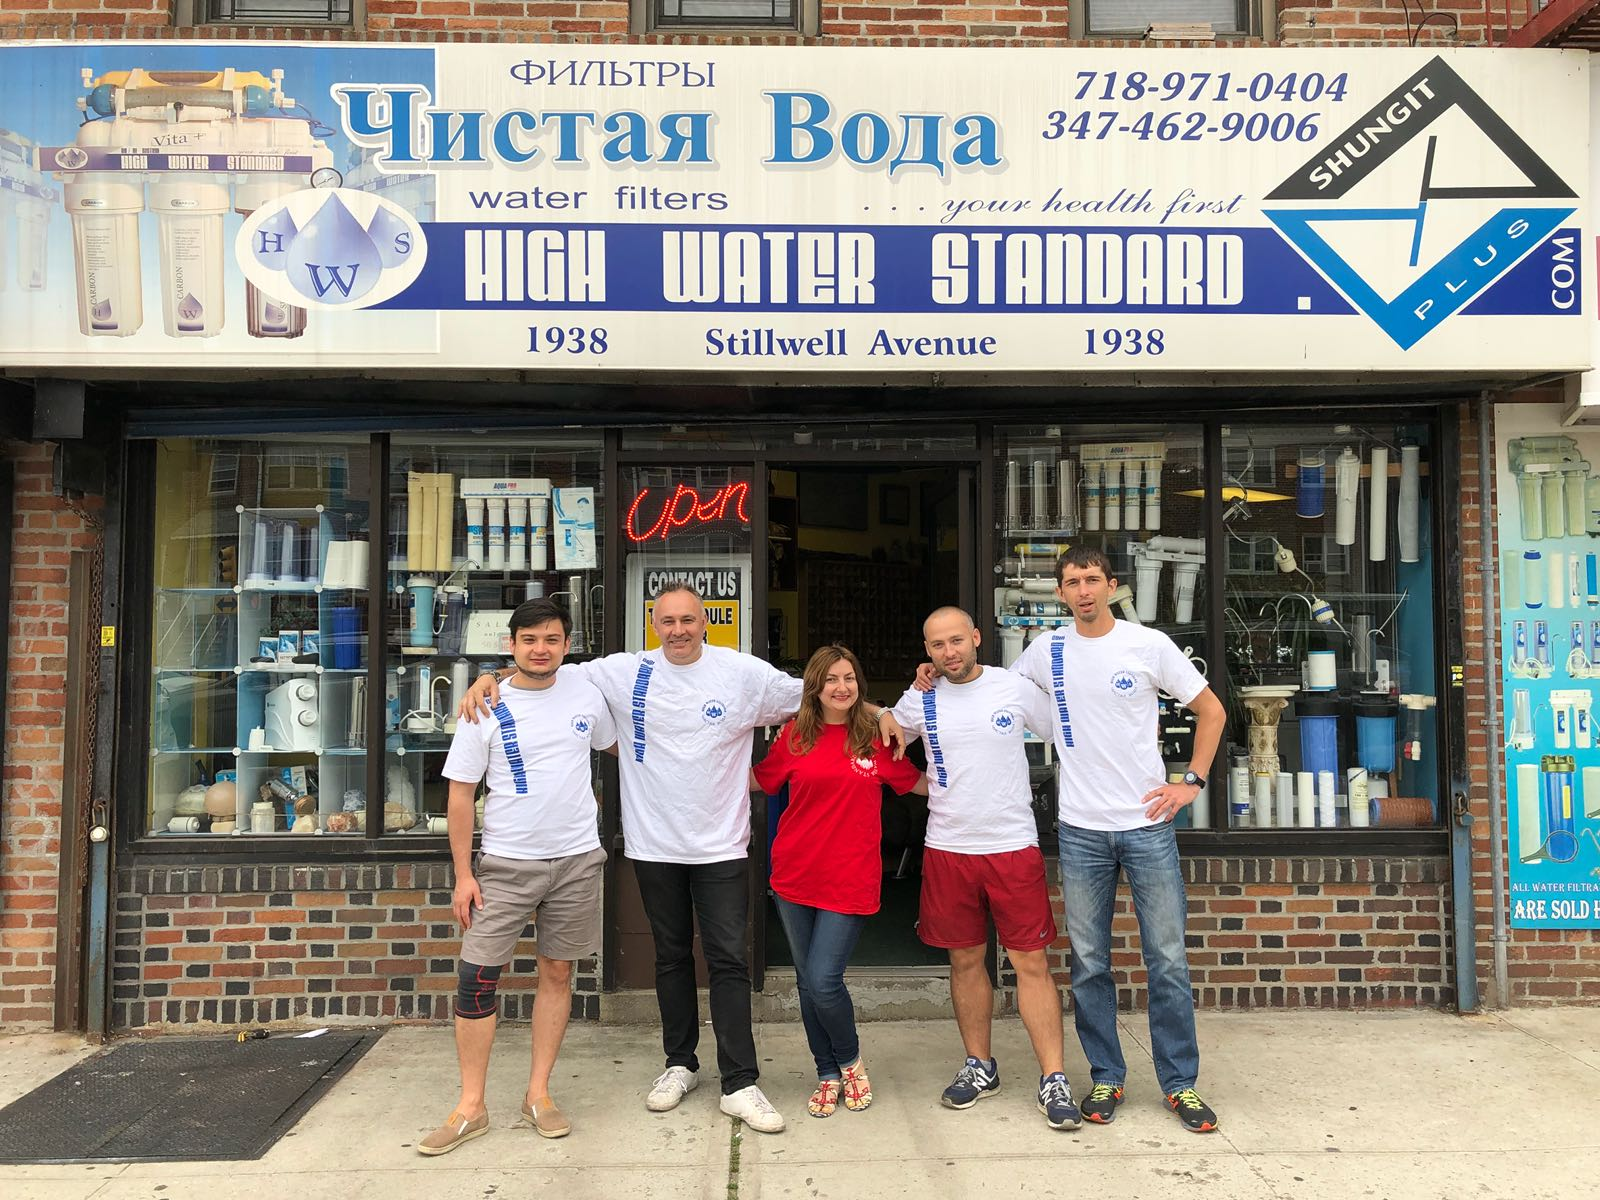 Top Water Filter Company in New York